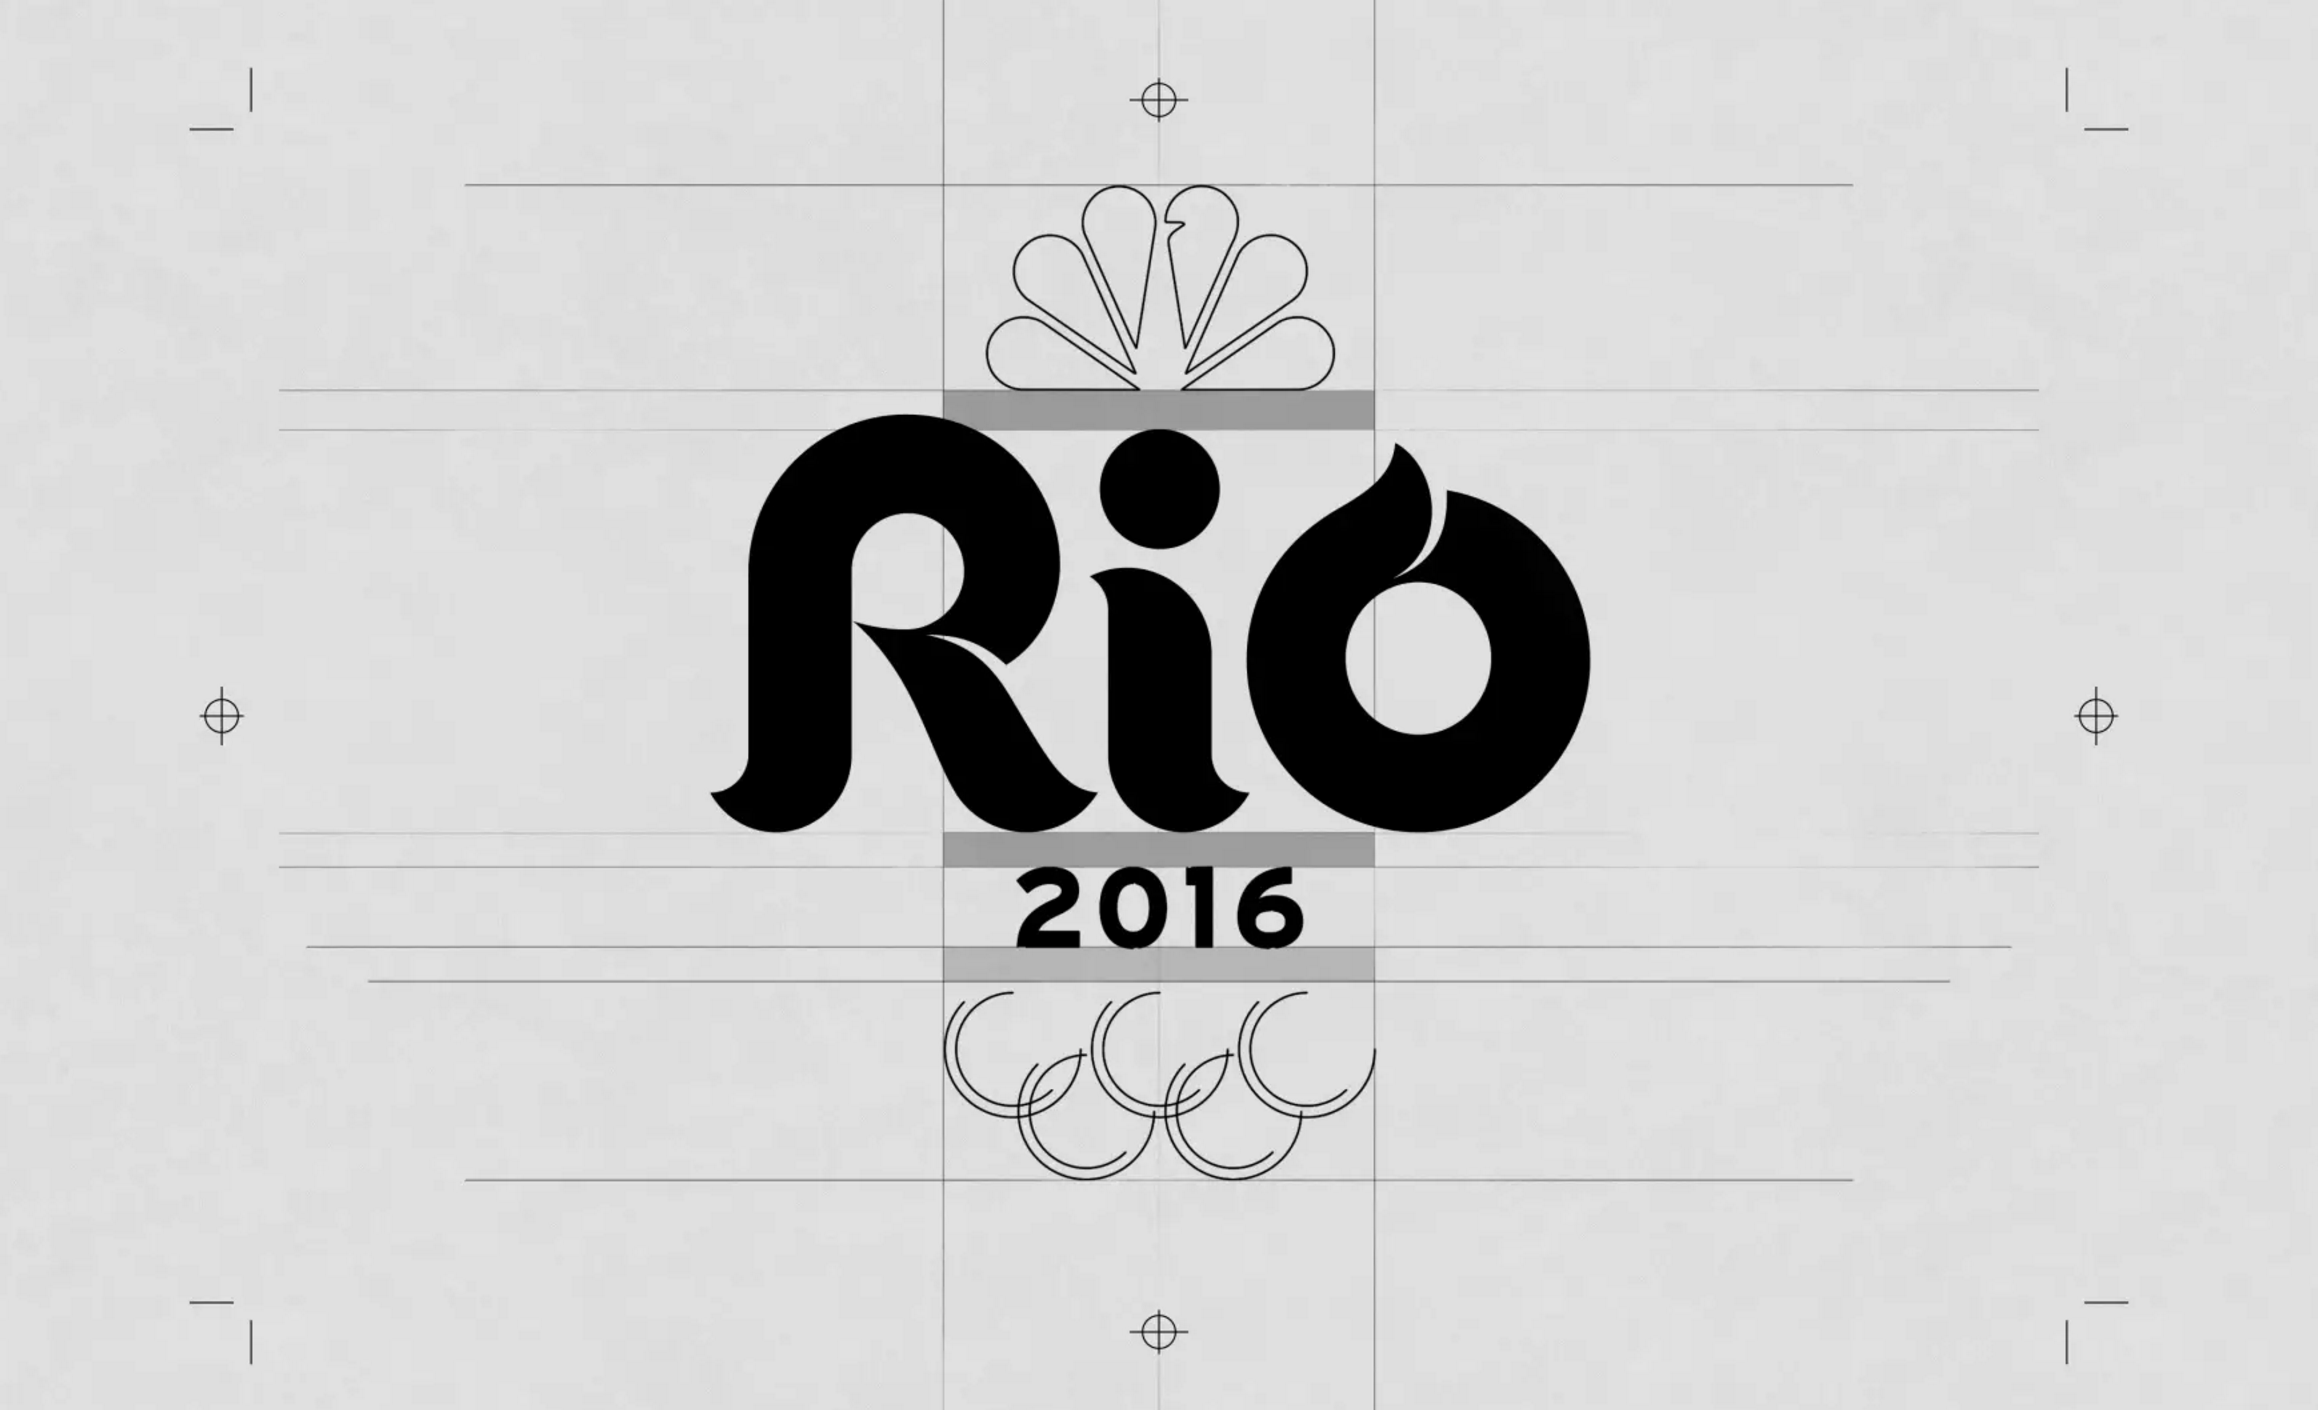 Graphic design firm Trollbäck + Company designed the primary NBC Rio Olympics logo.